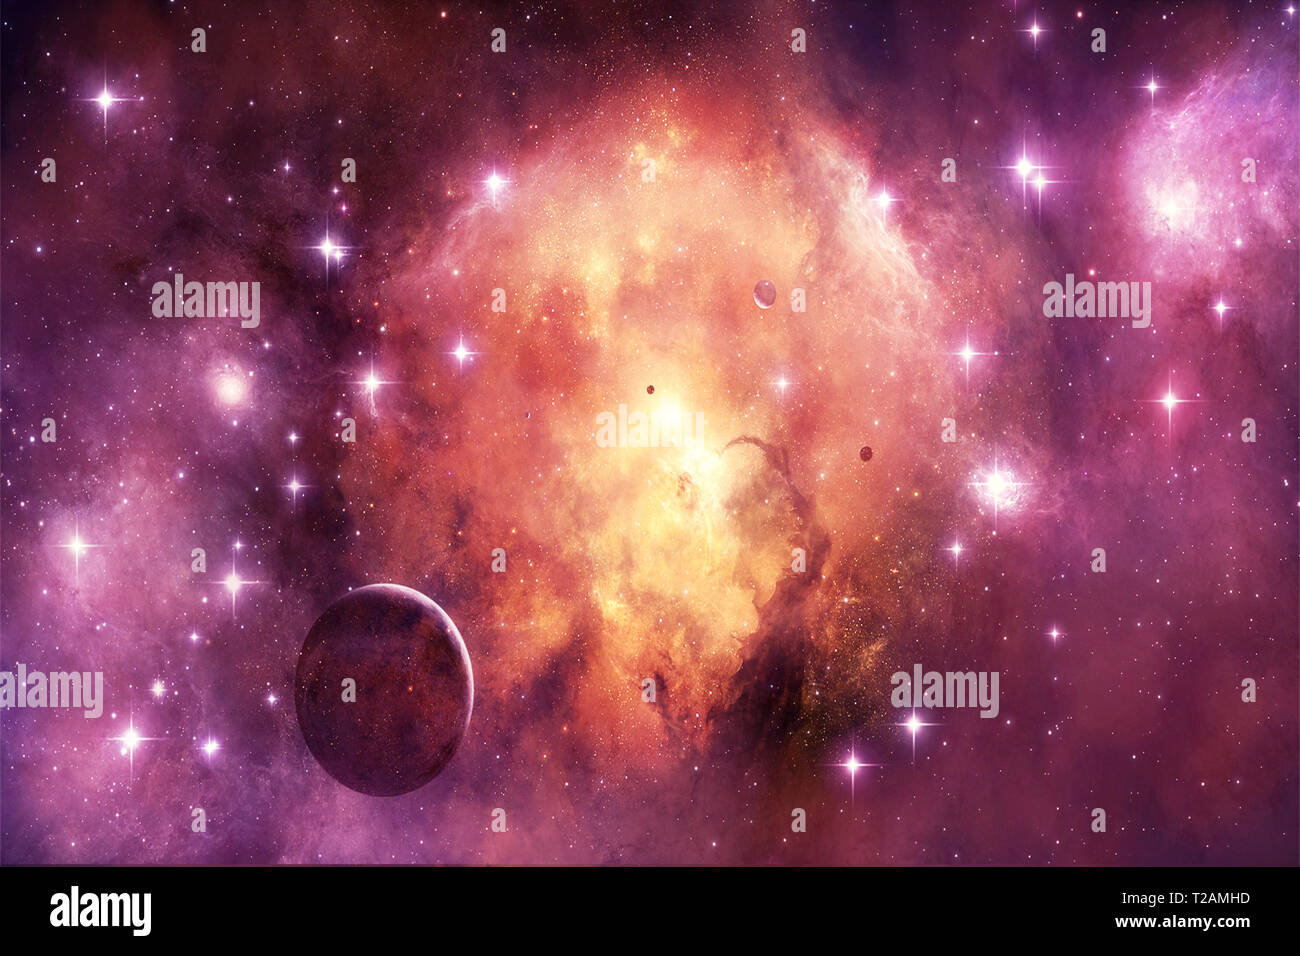 Abstract Artistic Beautiful Colorful Galaxy In A Magenta Nebula Space With Planets And Bright Stars Stock Photo Alamy